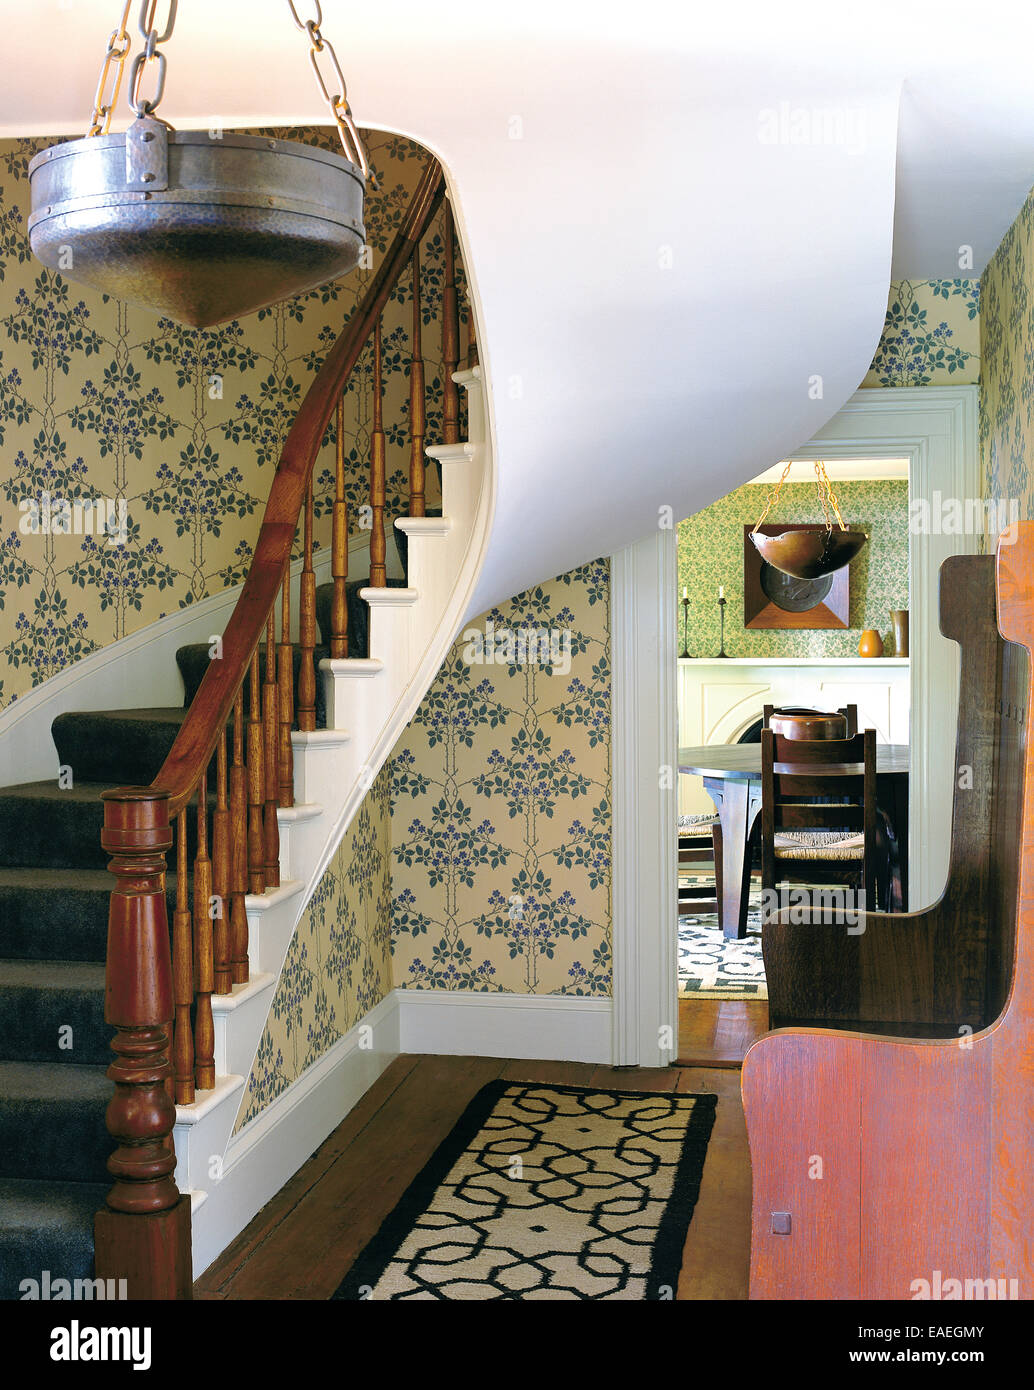 Curved Stairway And Entrance Way With Arts And Crafts